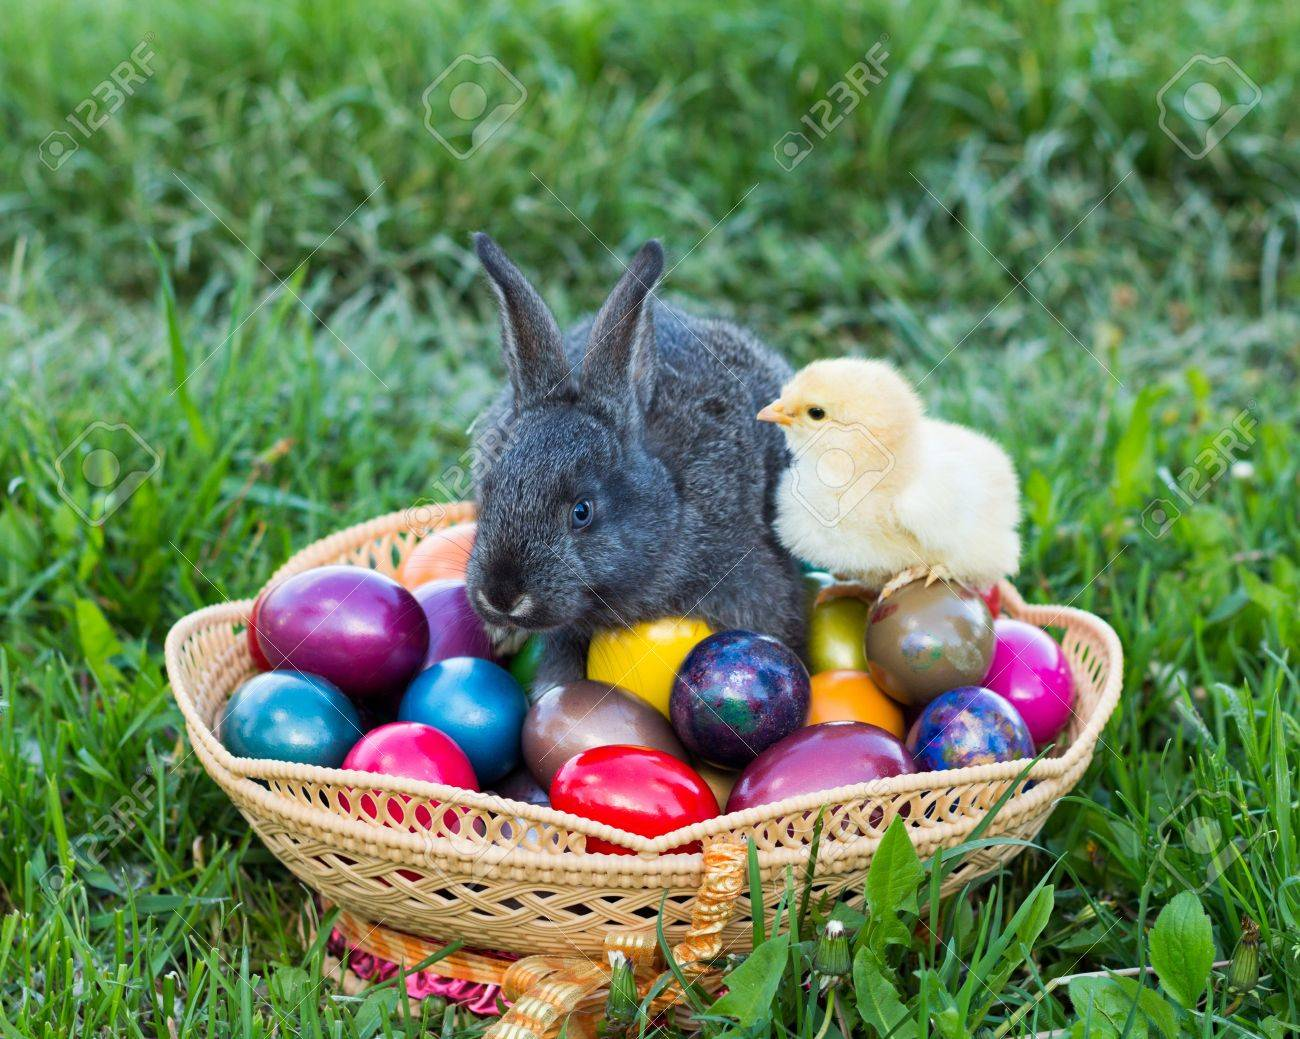 Tradition - Easter Bunny And Chick In A Basket Full Of Easter ...